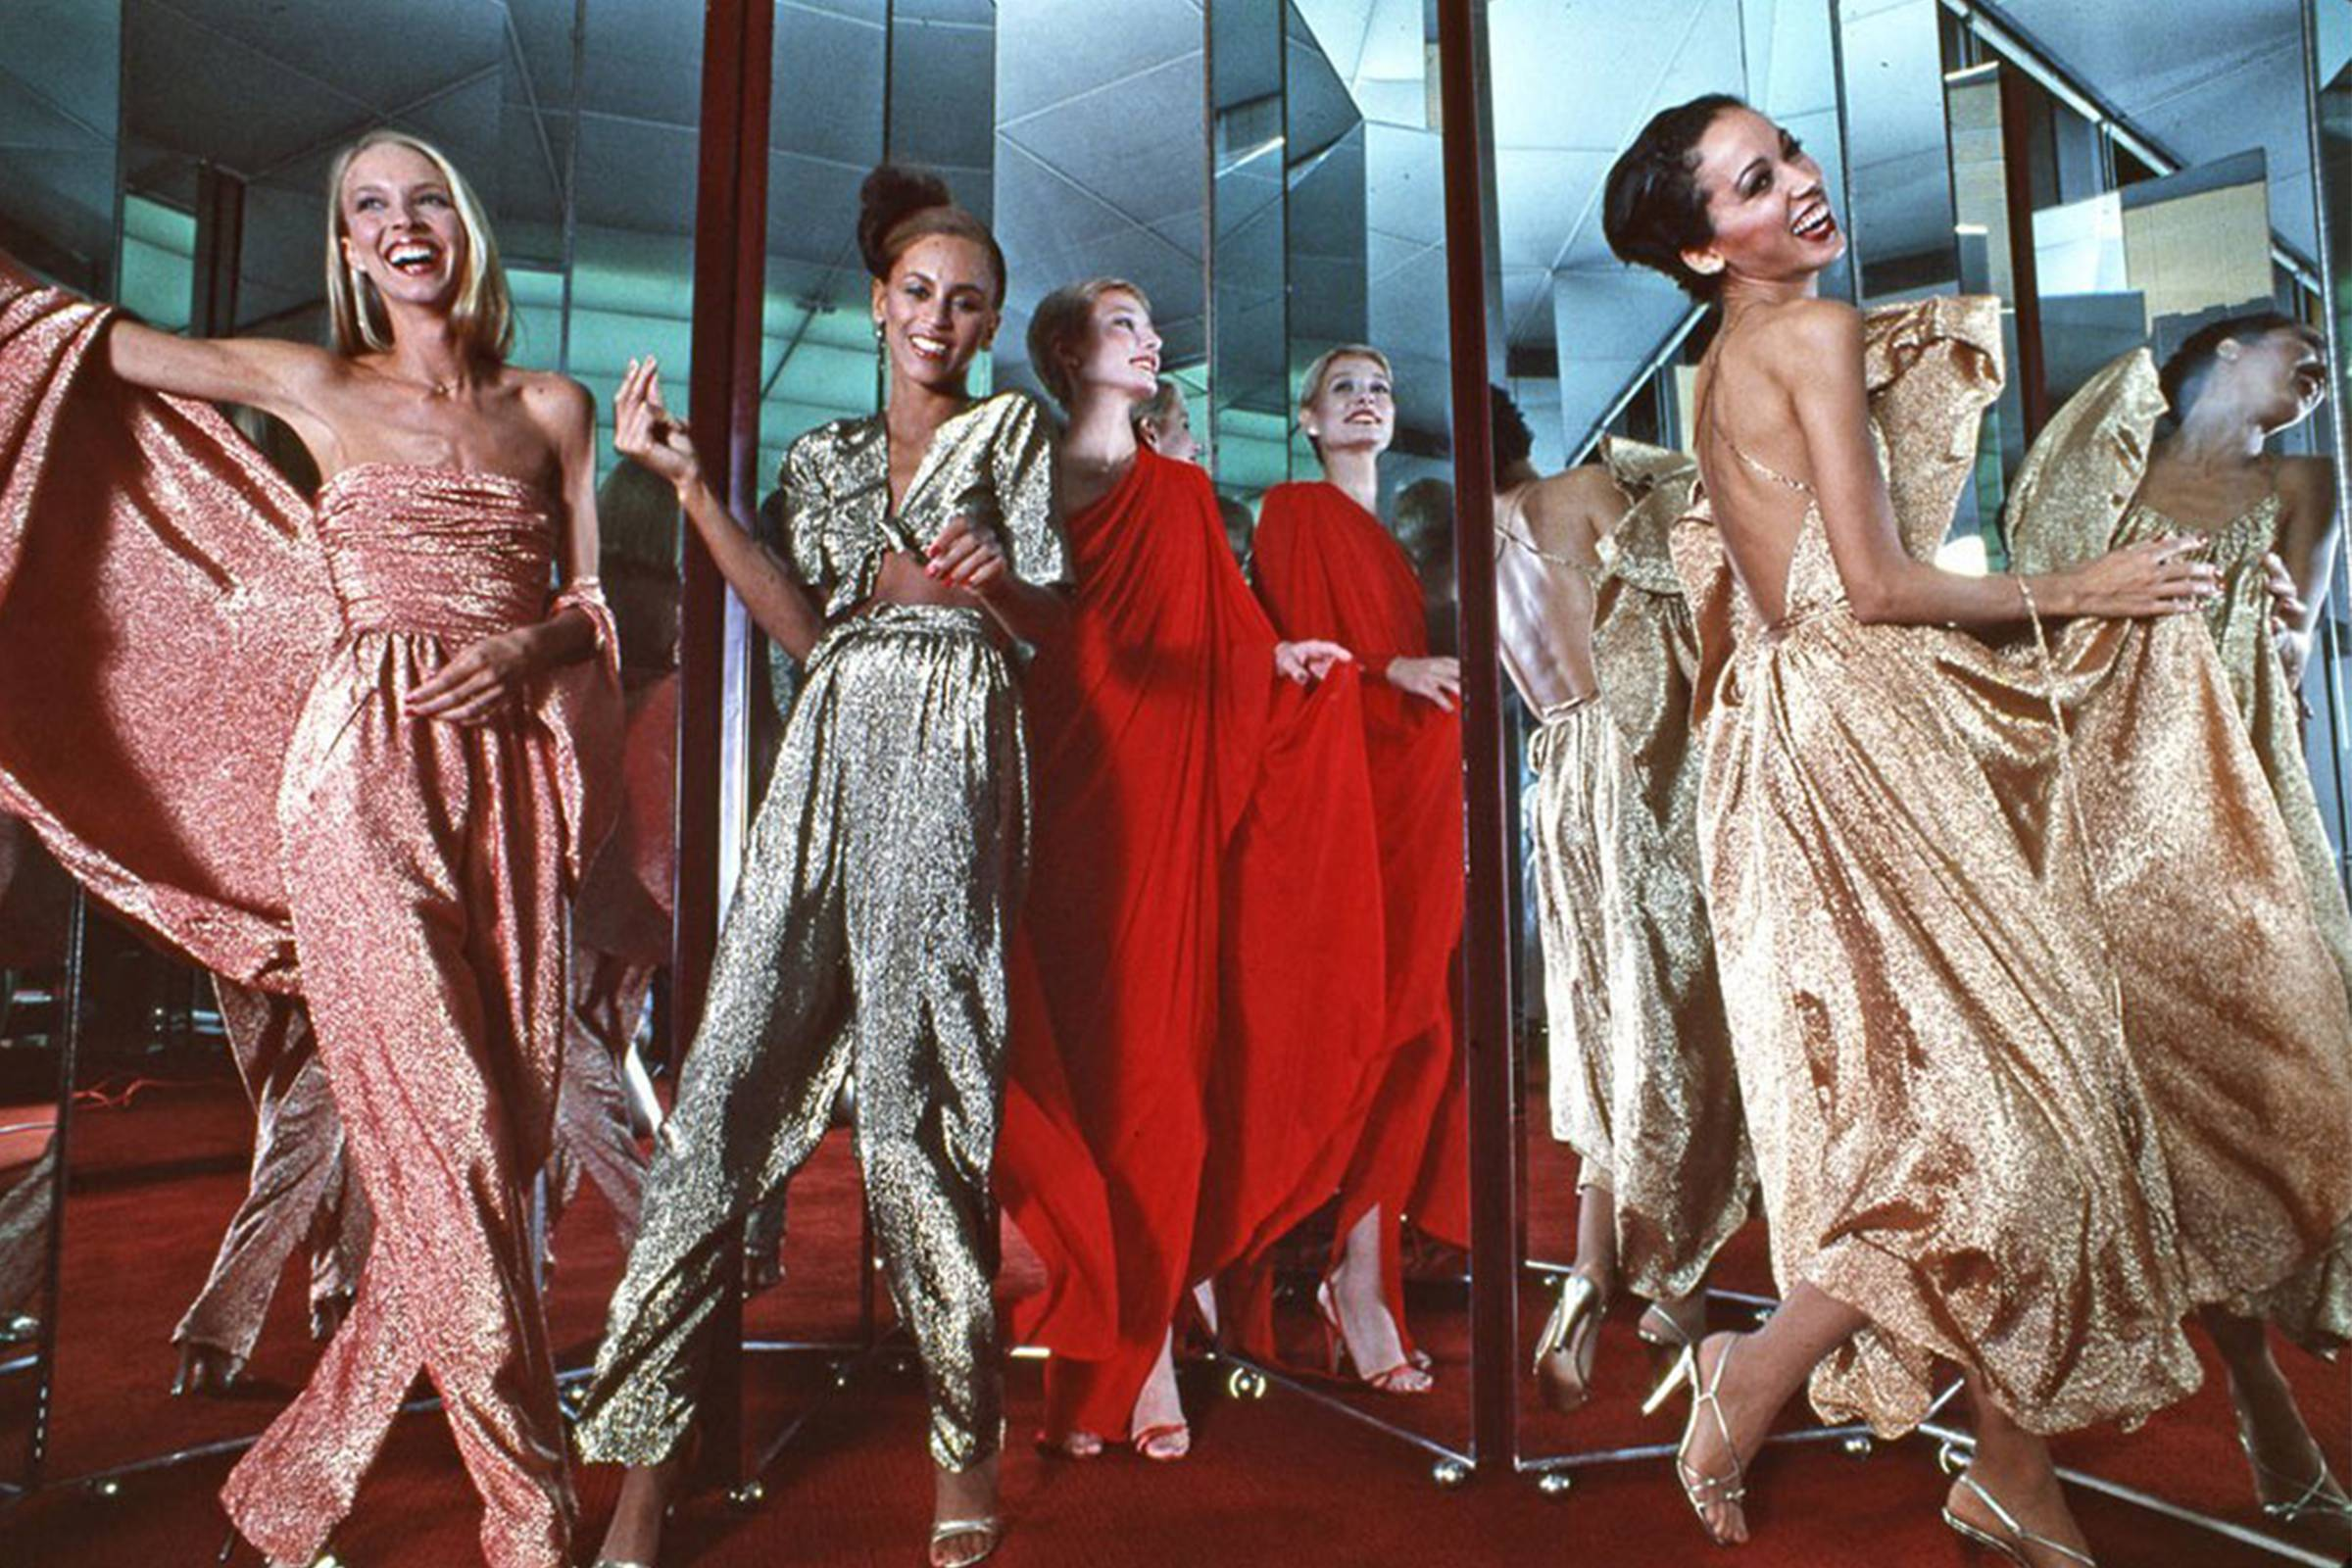 Heroine: Disco Dressing, Then and Now